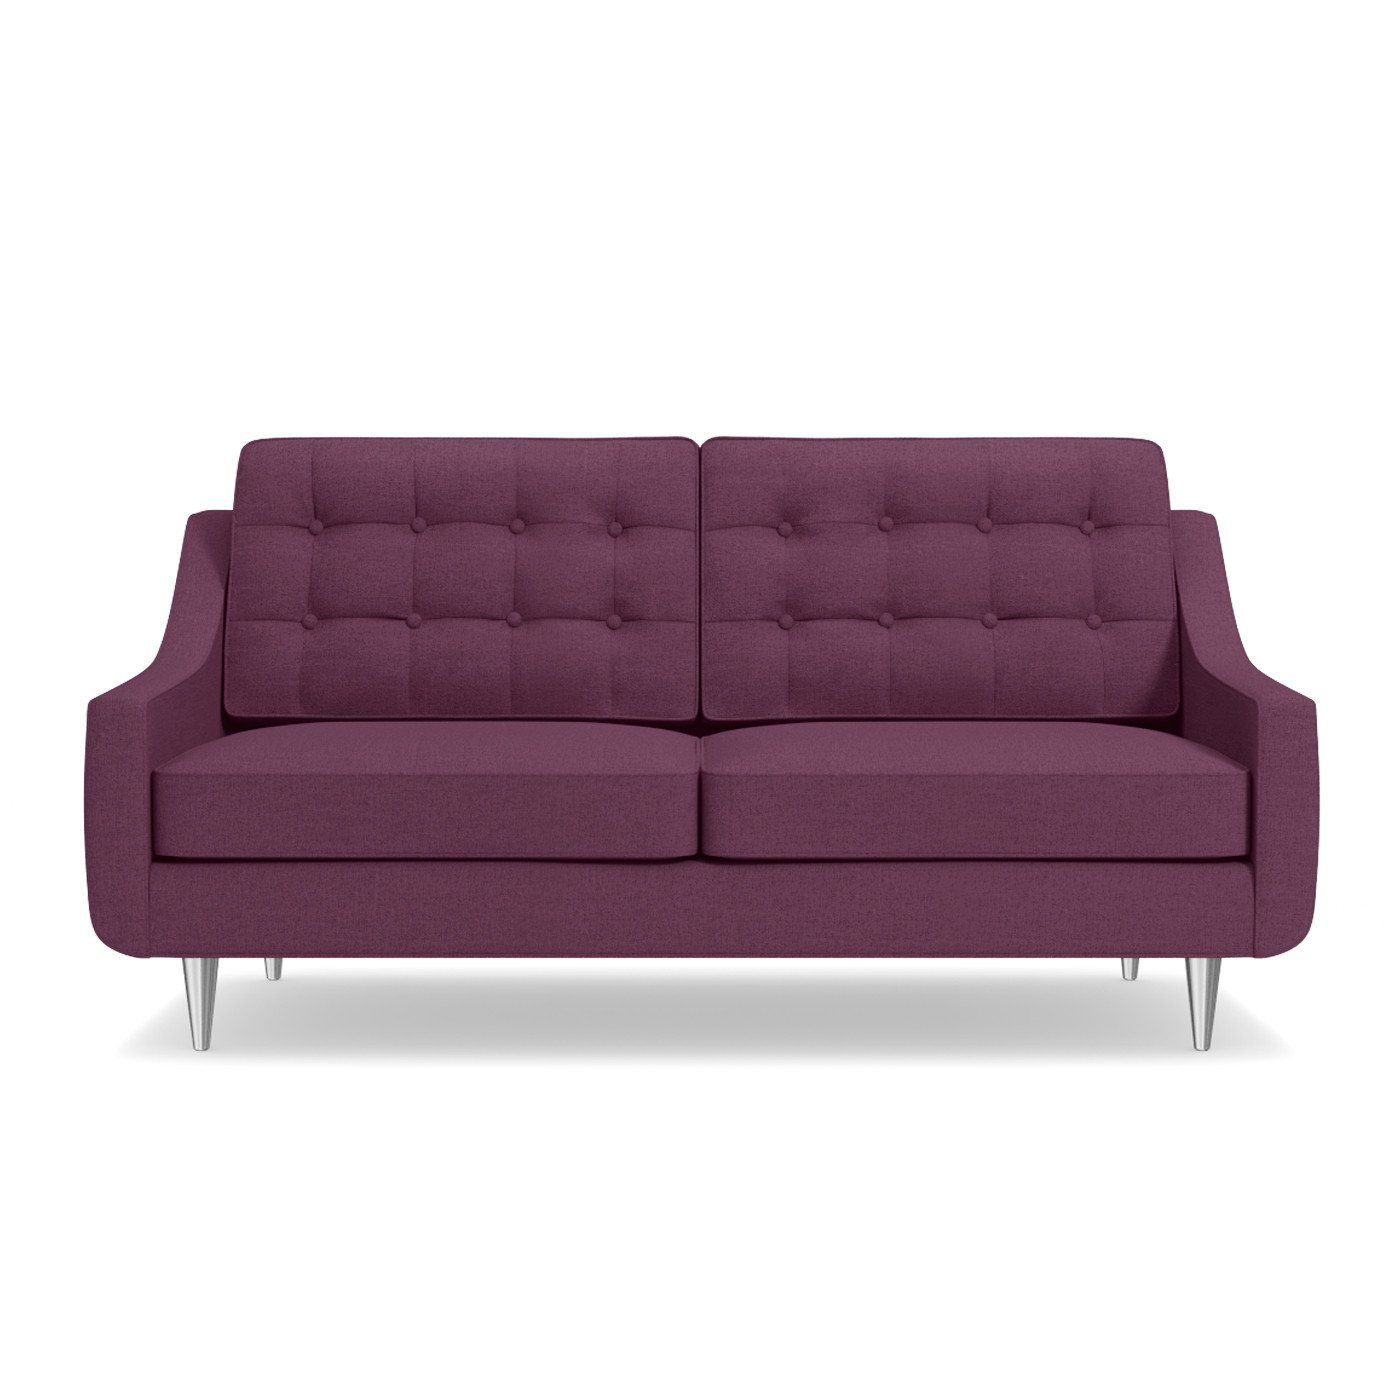 Posh Yet Perfectly Approachable, The Cloverdale Drive Apartment Size Sofa